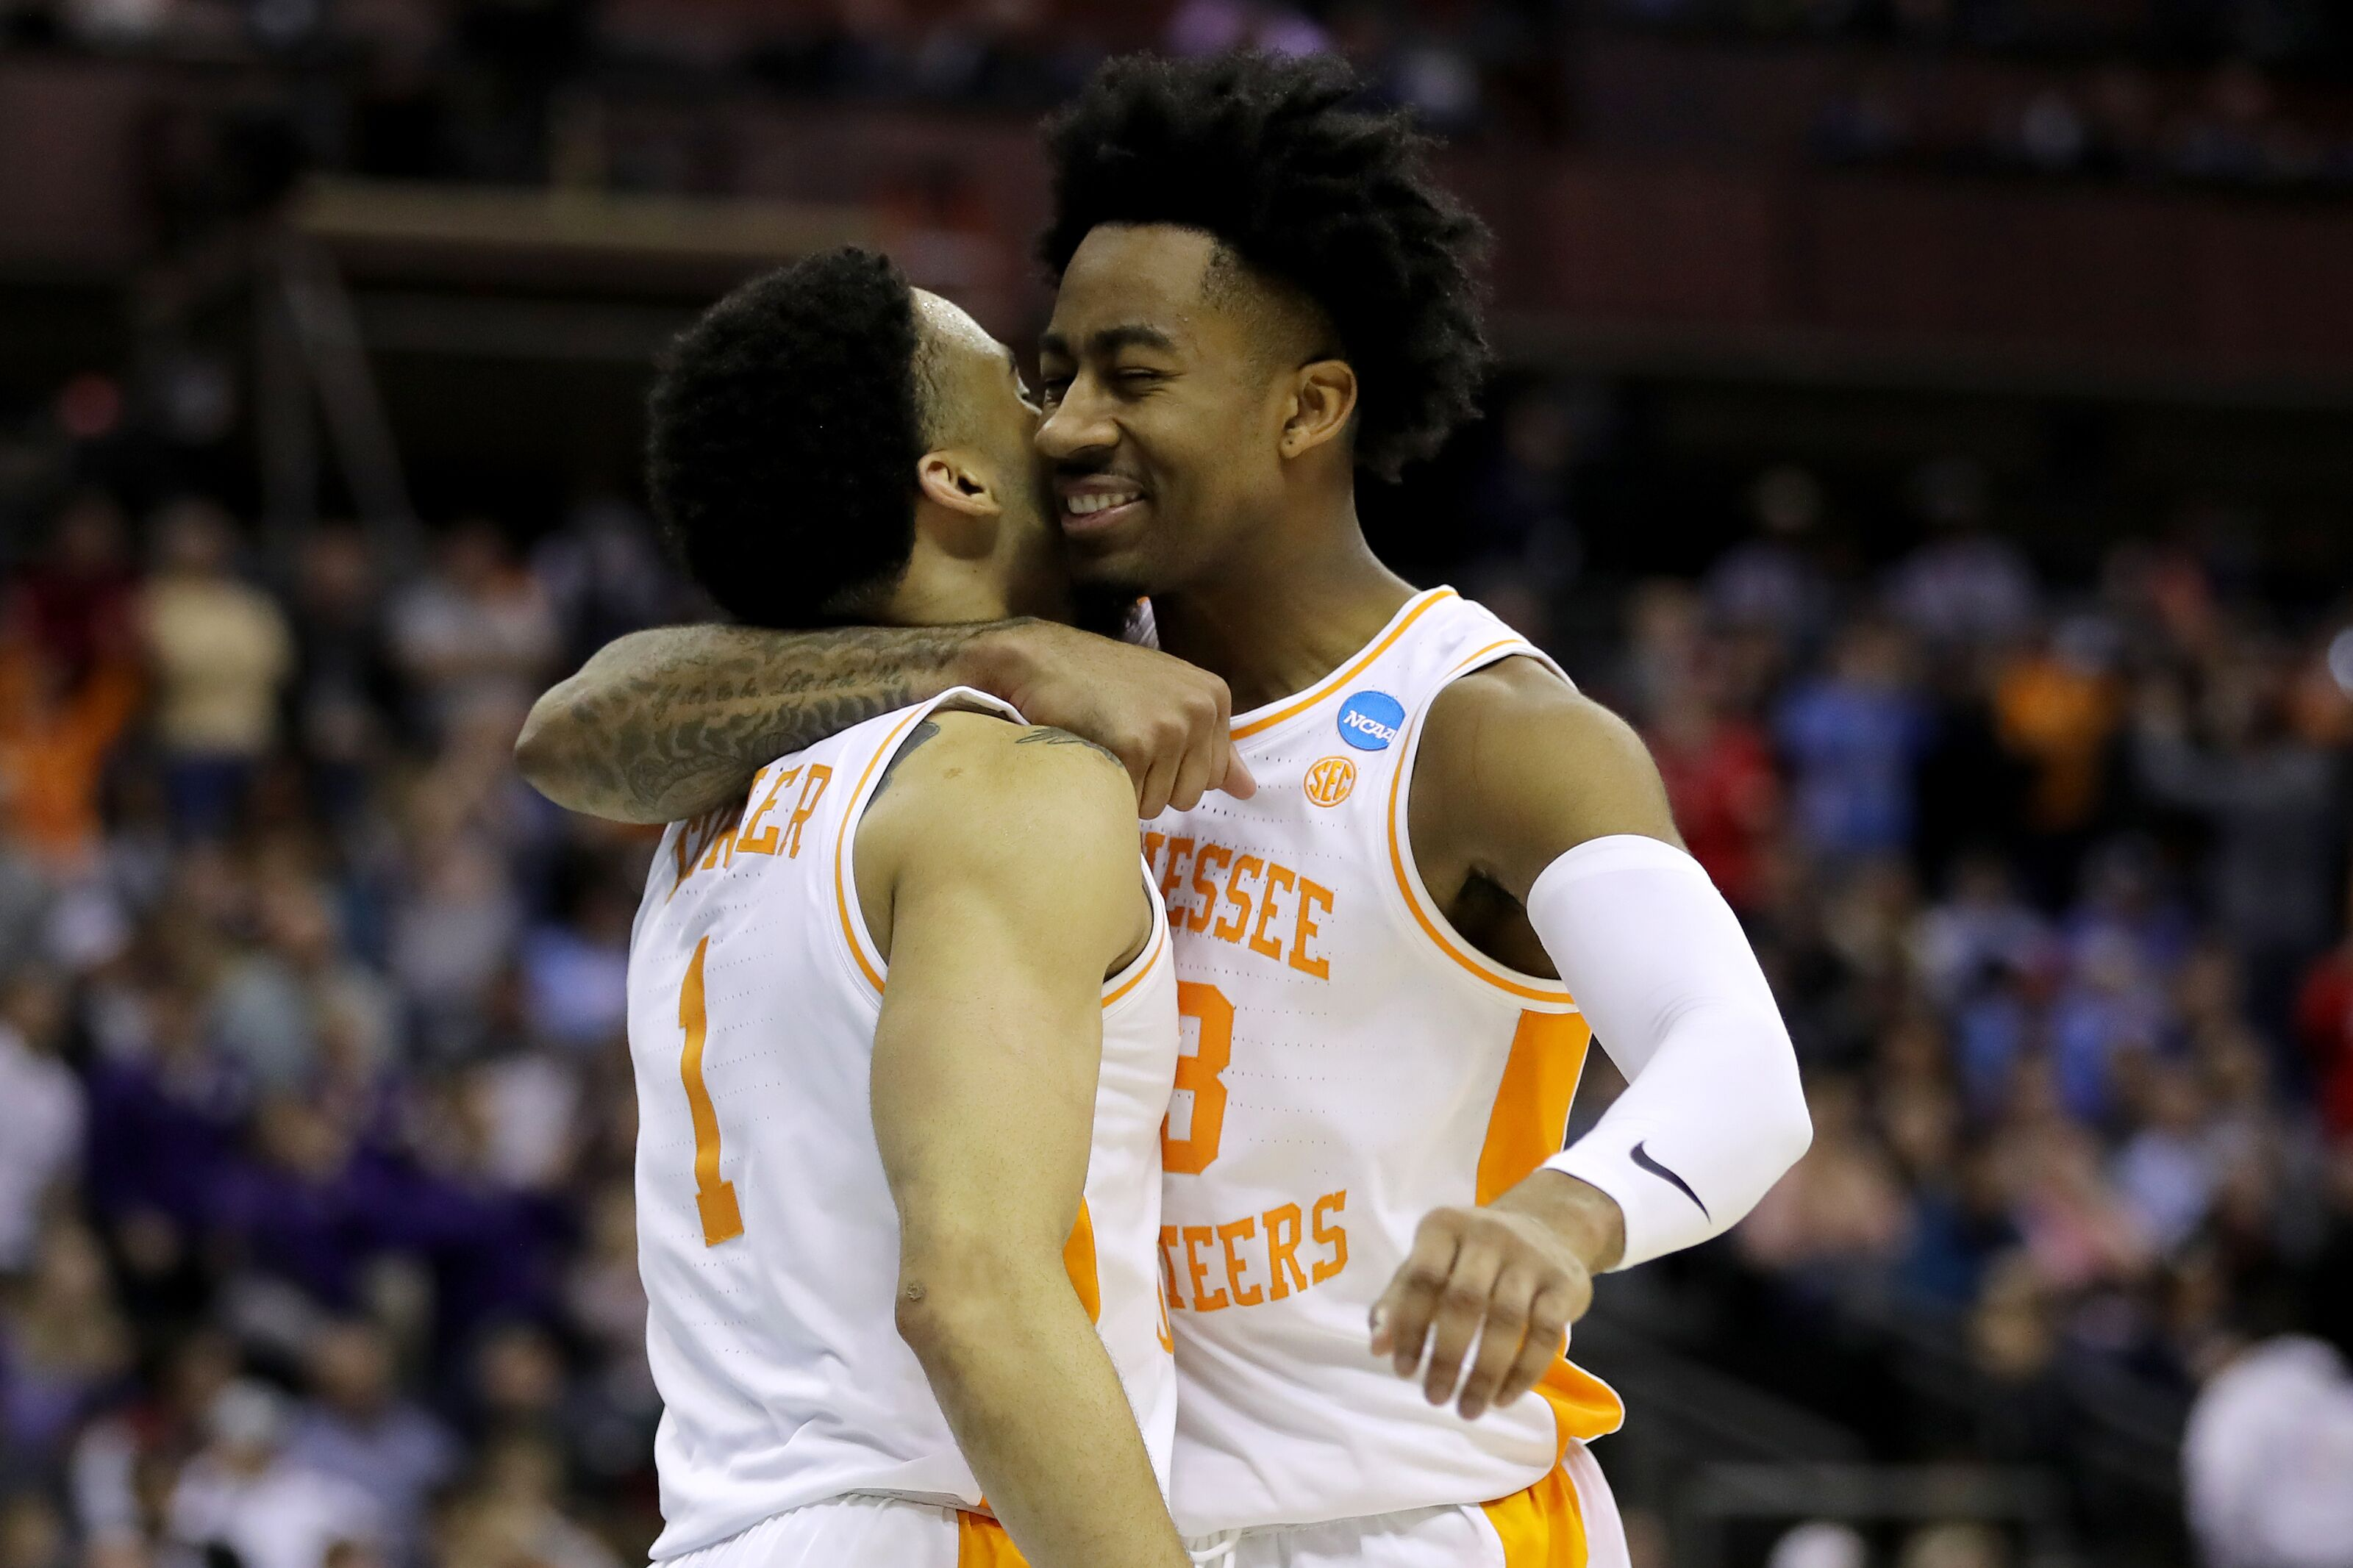 Tennessee Basketball: 3 reasons why you should be hype about this year